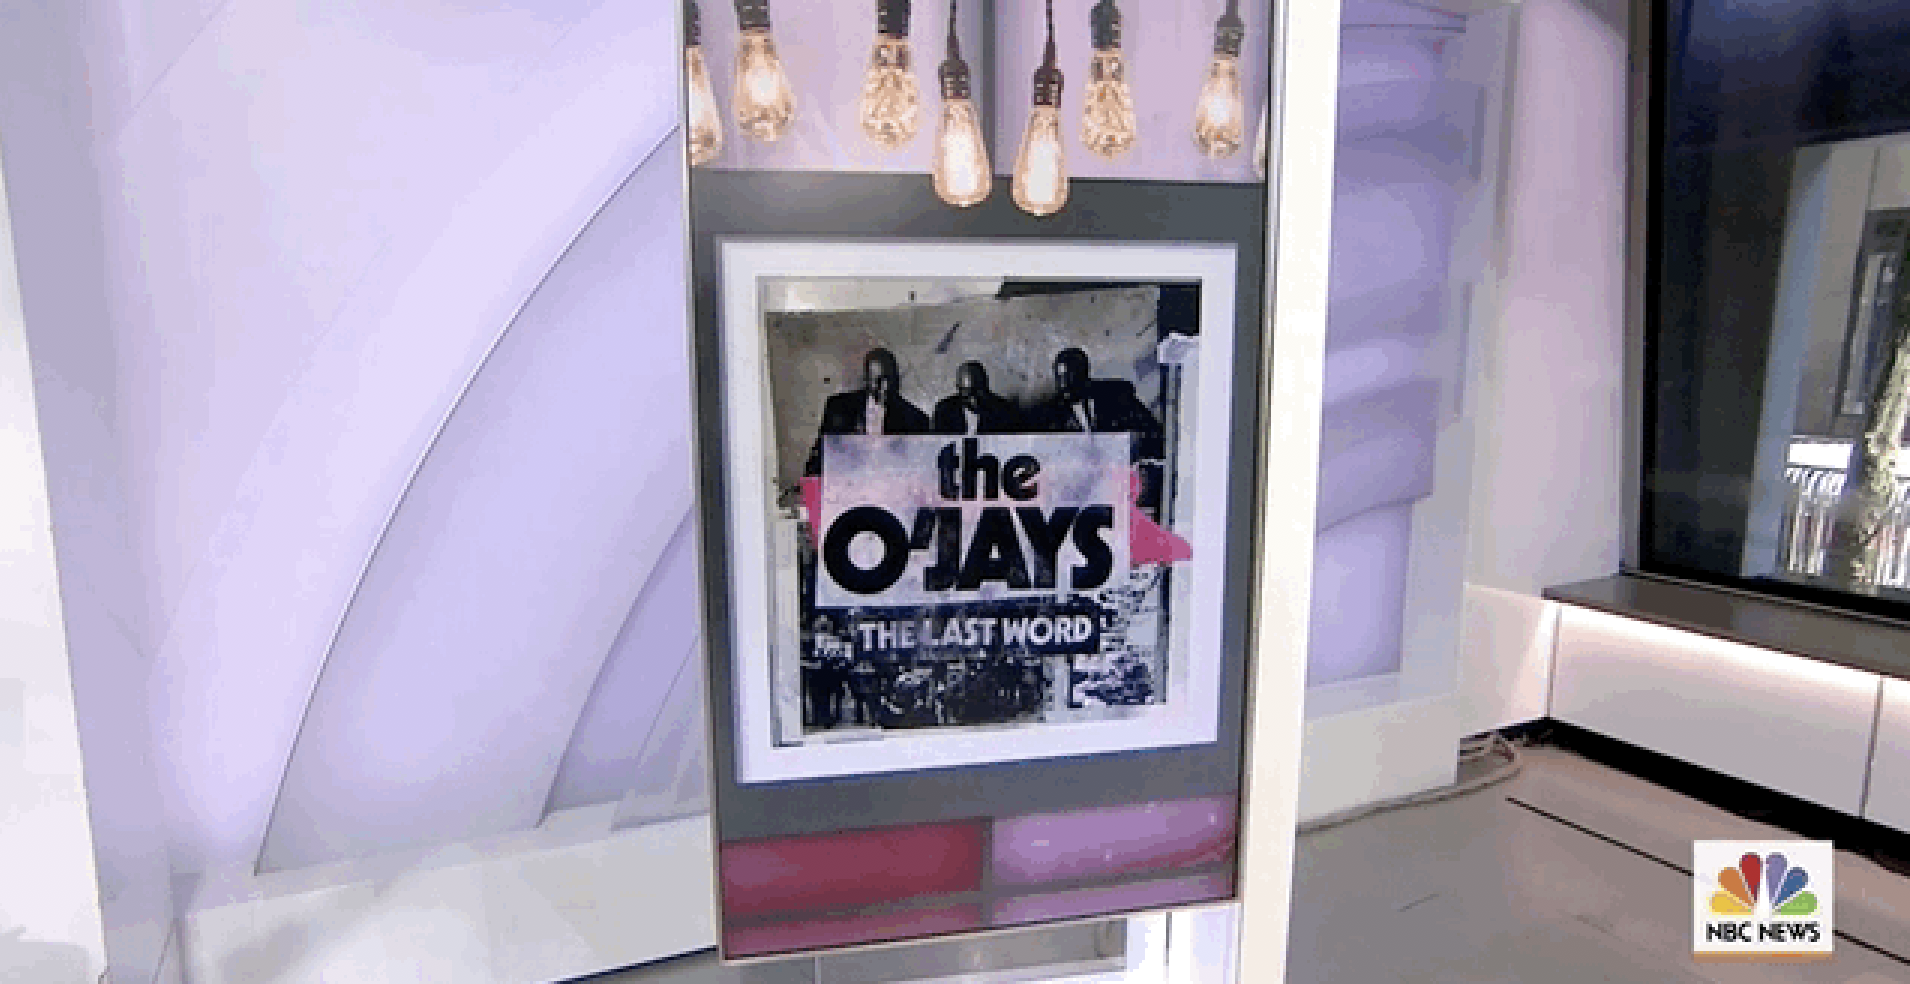 The O'JAYS performing on NBC Today live in New York.